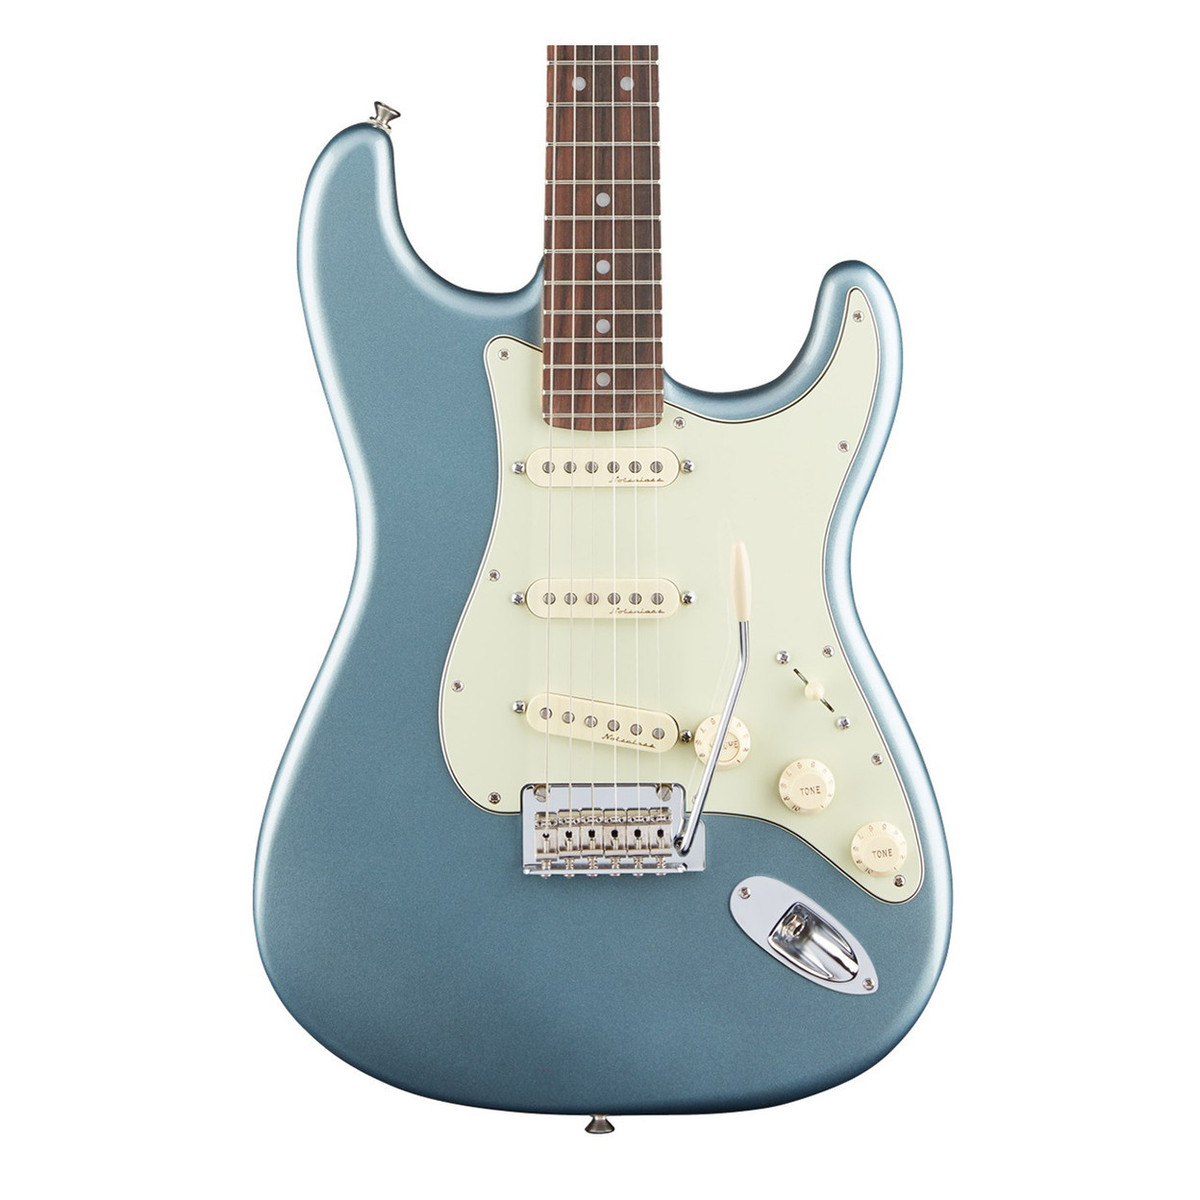 fender deluxe roadhouse stratocaster electric guitar mystic ice blue at gear4music. Black Bedroom Furniture Sets. Home Design Ideas